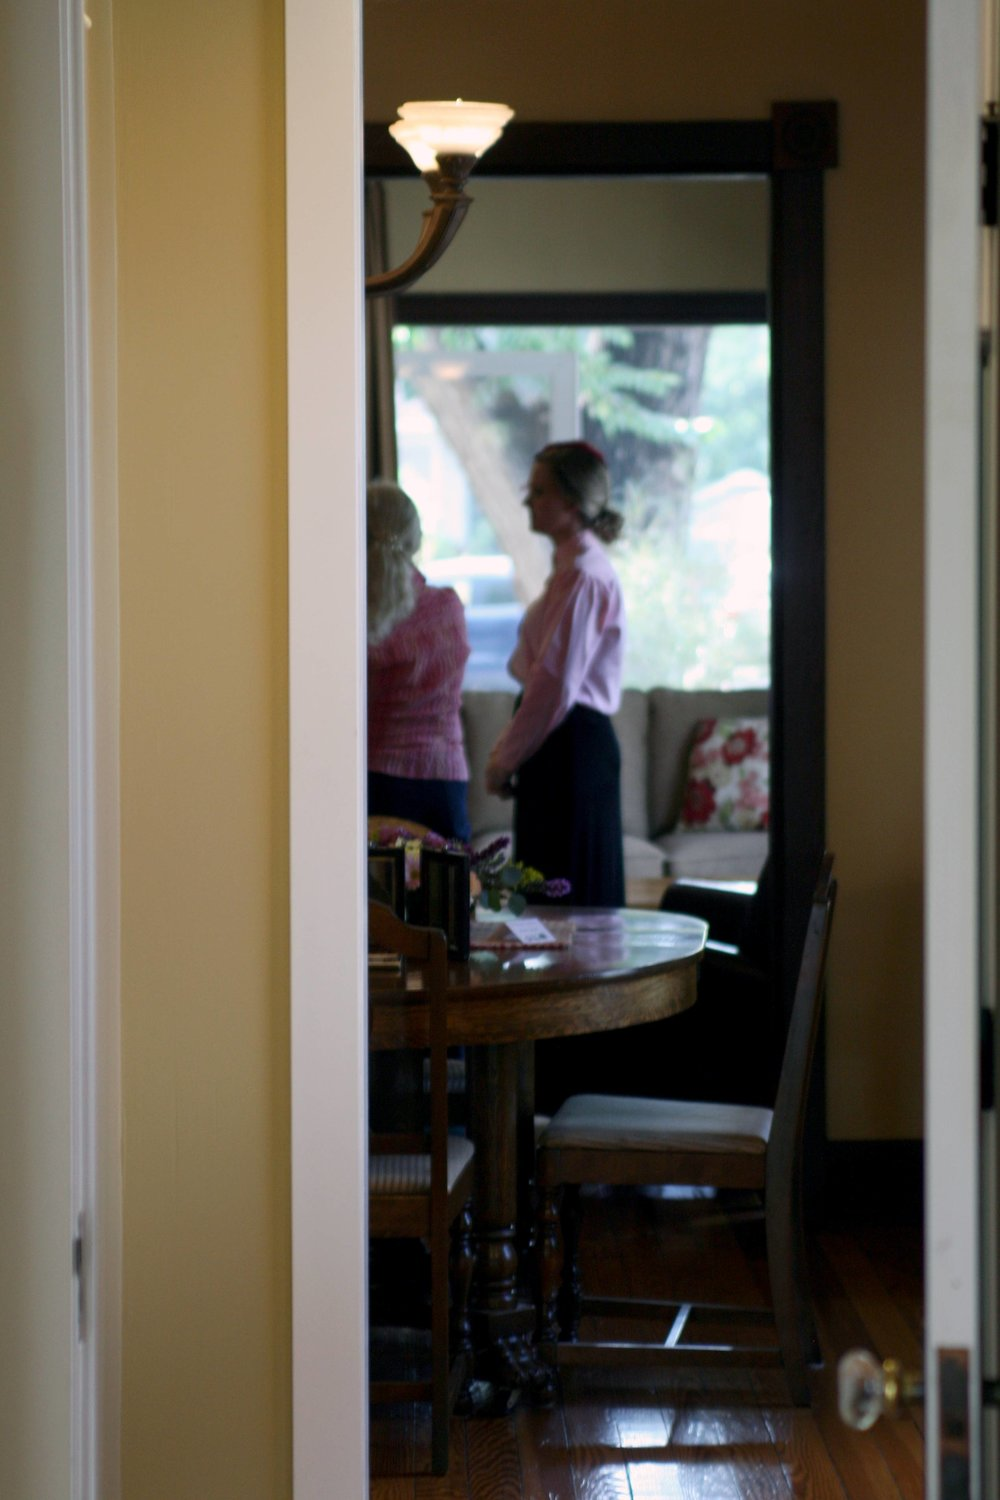 Tour attendees walk through a historic home on Smith Street in Fort Collins